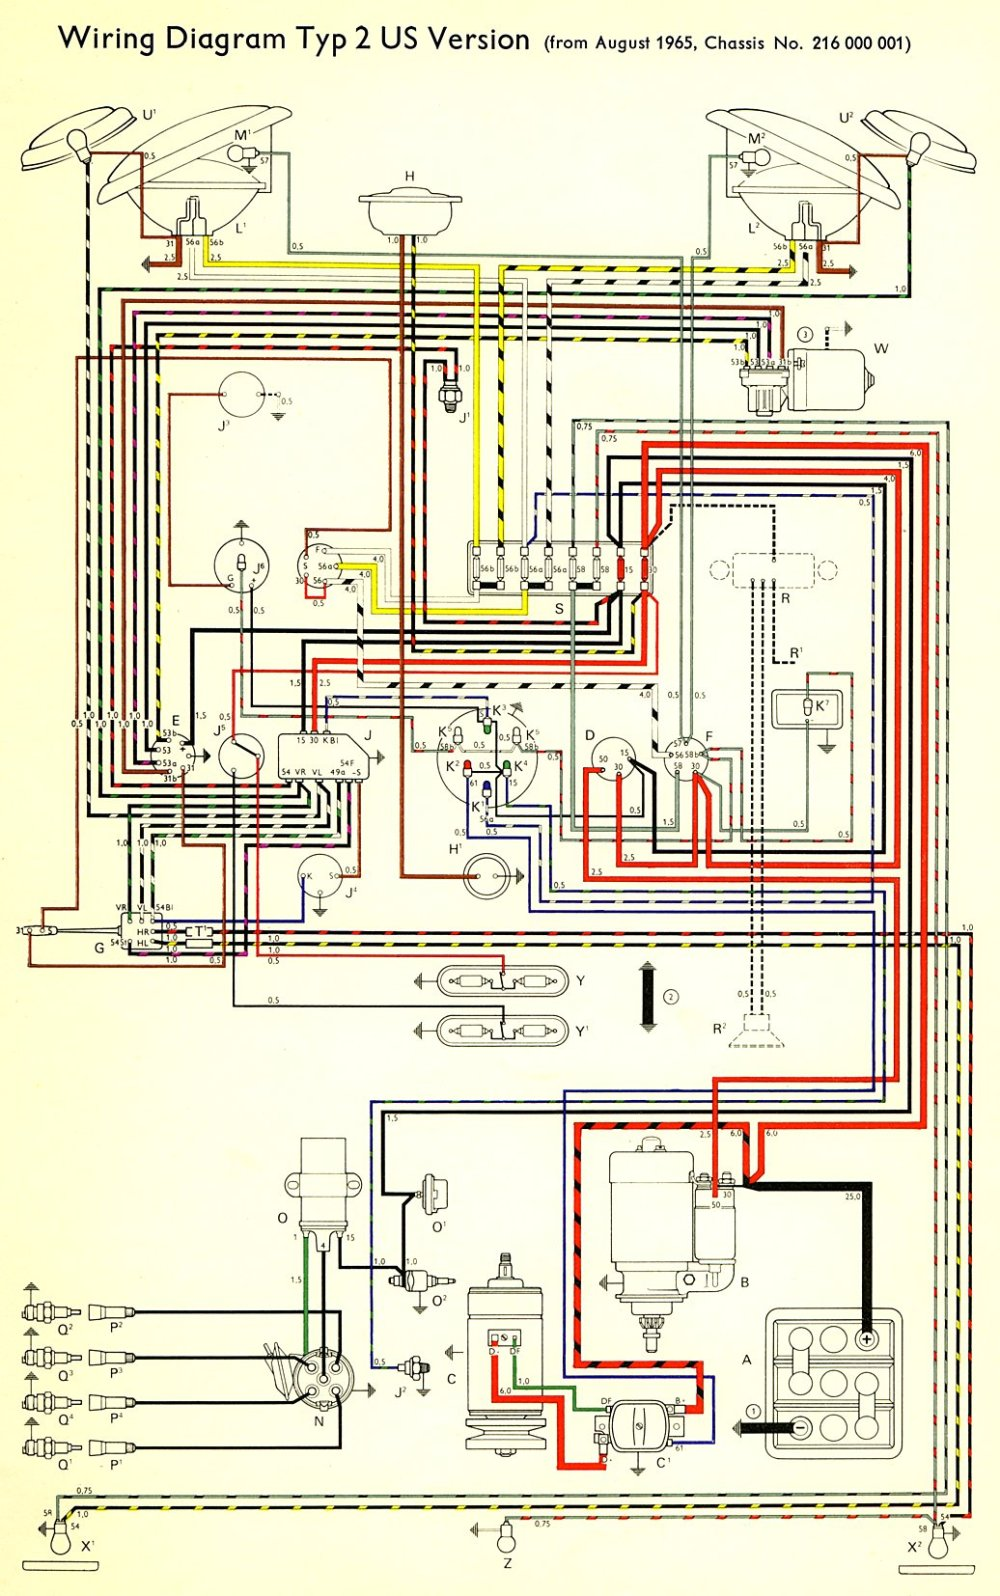 medium resolution of 1966 bus wiring diagram usa thegoldenbug com rh thegoldenbug com 1968 vw wiring diagram for a